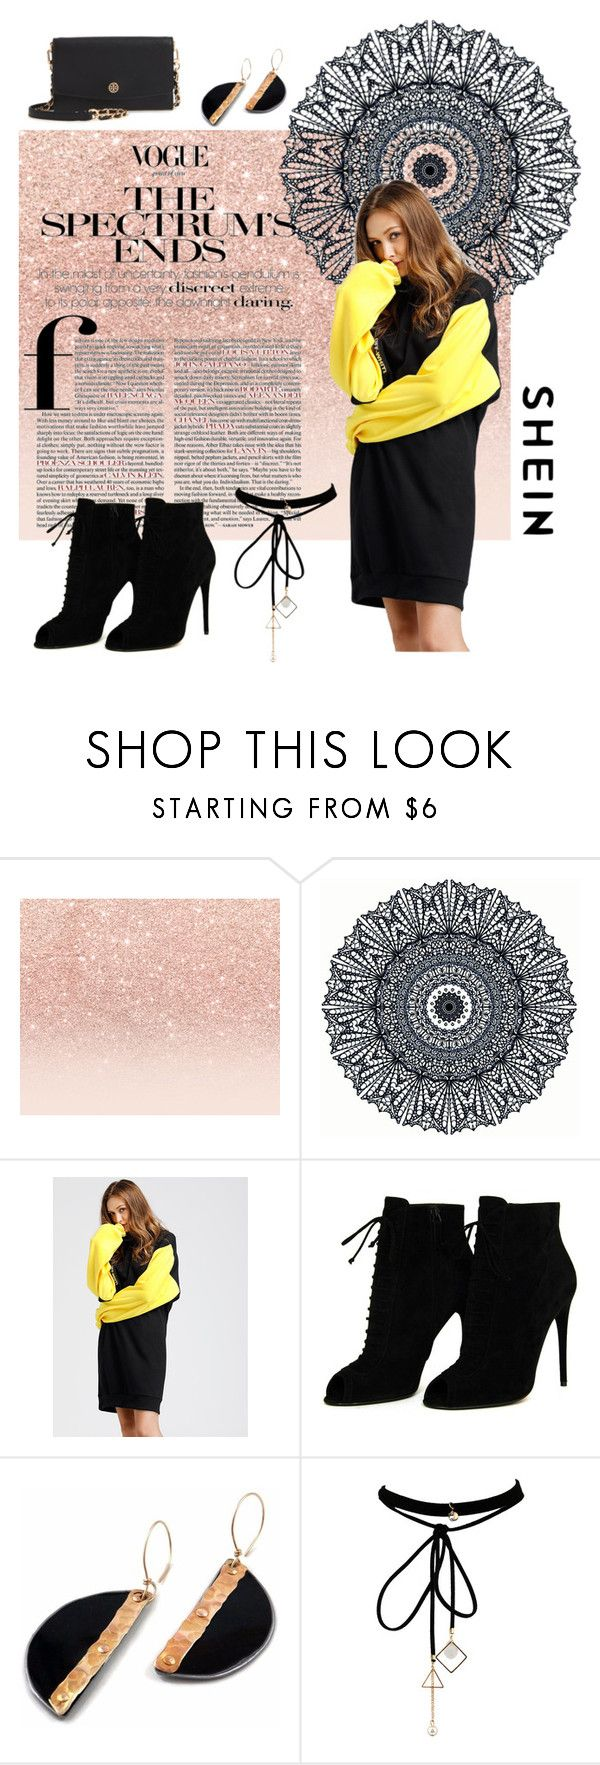 """""""S H E I N"""" by scodinoa ❤ liked on Polyvore featuring Glitter Pink, Tom Ford, WithChic and Tory Burch"""